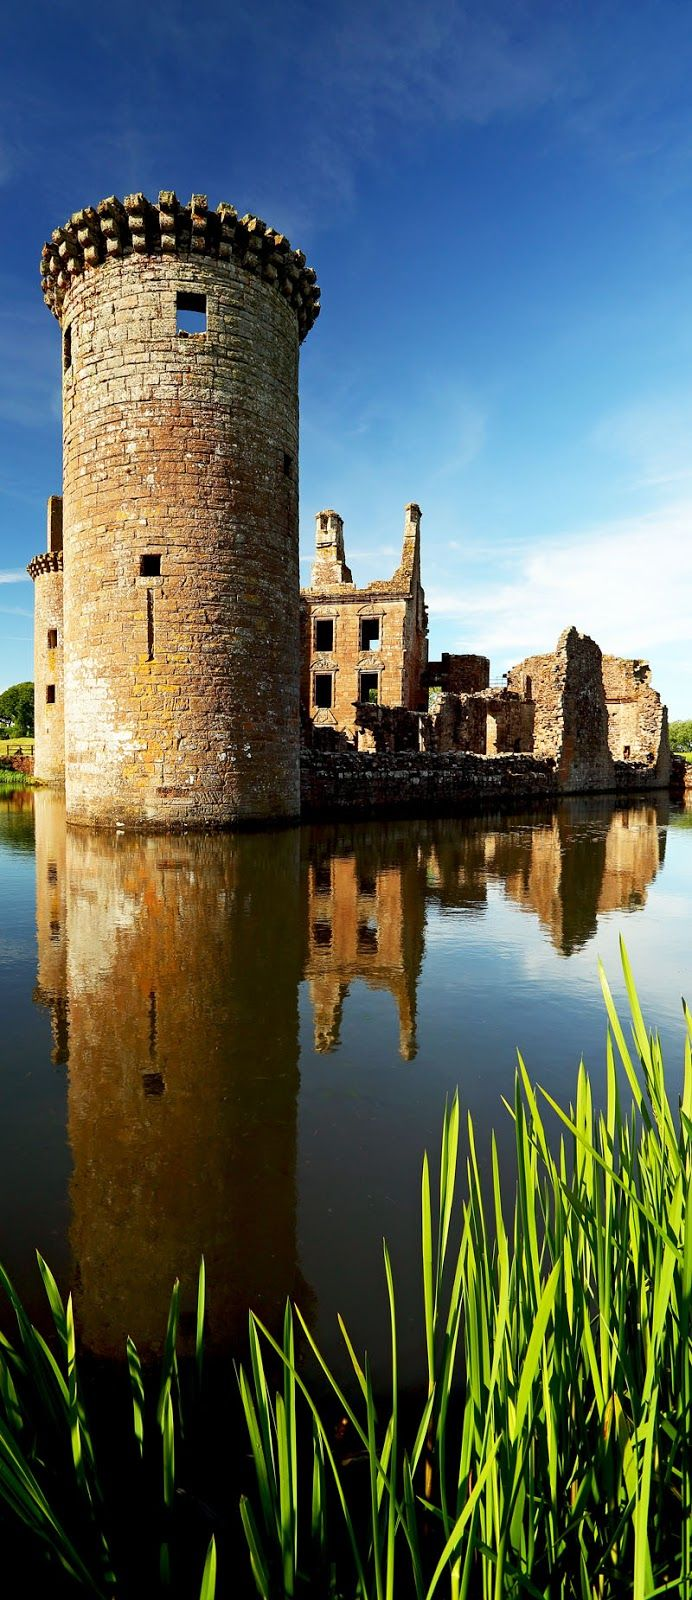 Caerlaverock Castle reflecting on the moat that surrounds the castle. Dumfrieshire, Scotland | 19 Reasons Why Scotland Must Be on Your Bucket List.